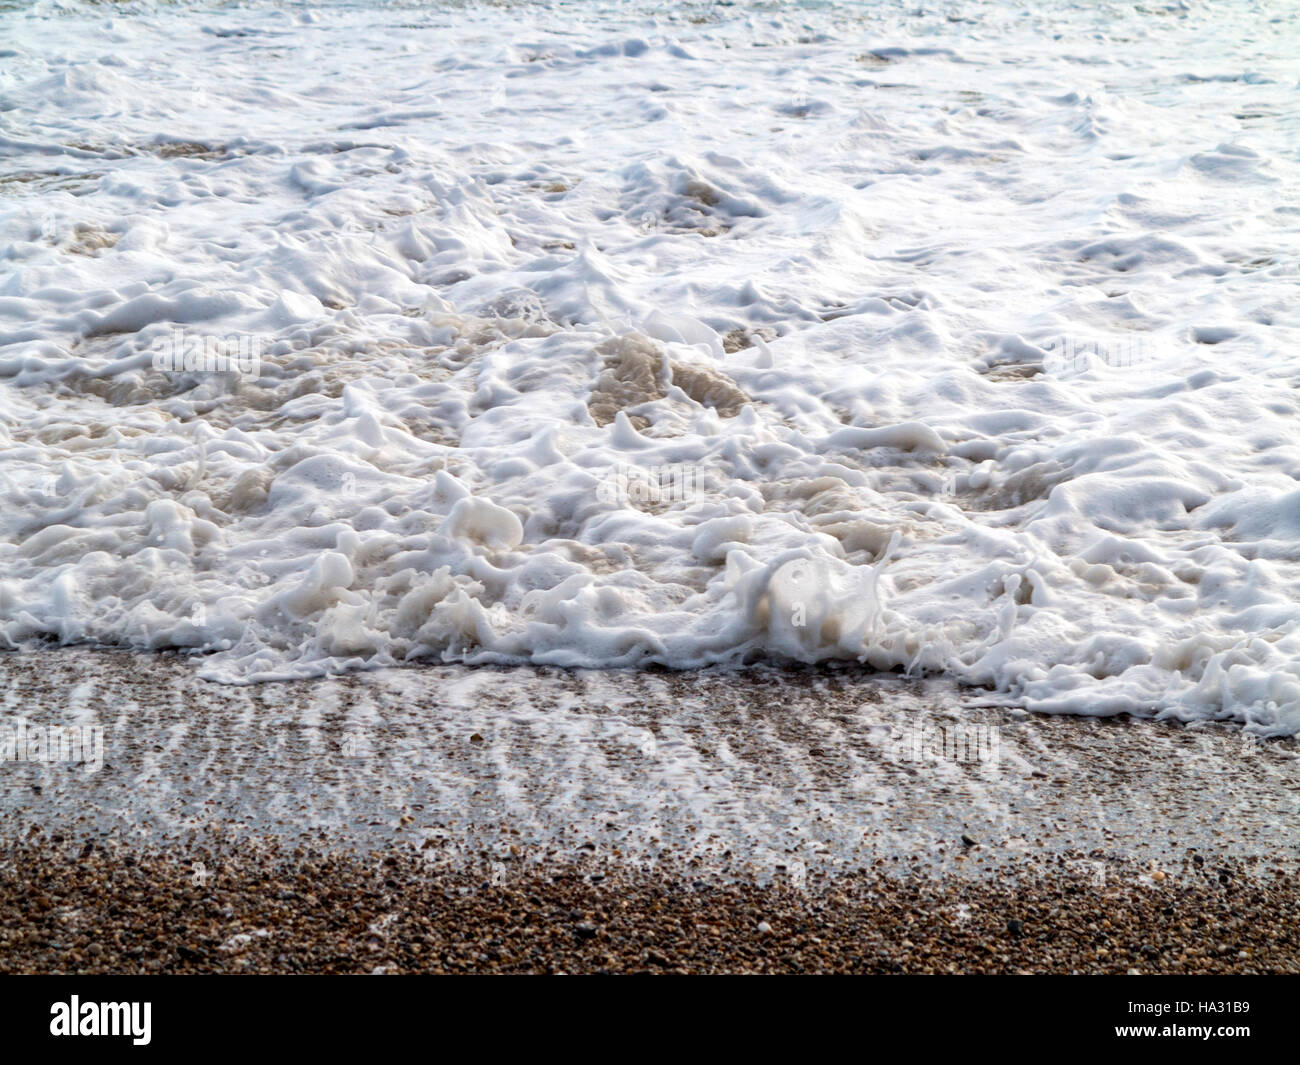 Tidal froth on a pebble beach shoreline during heavy seas - Stock Image